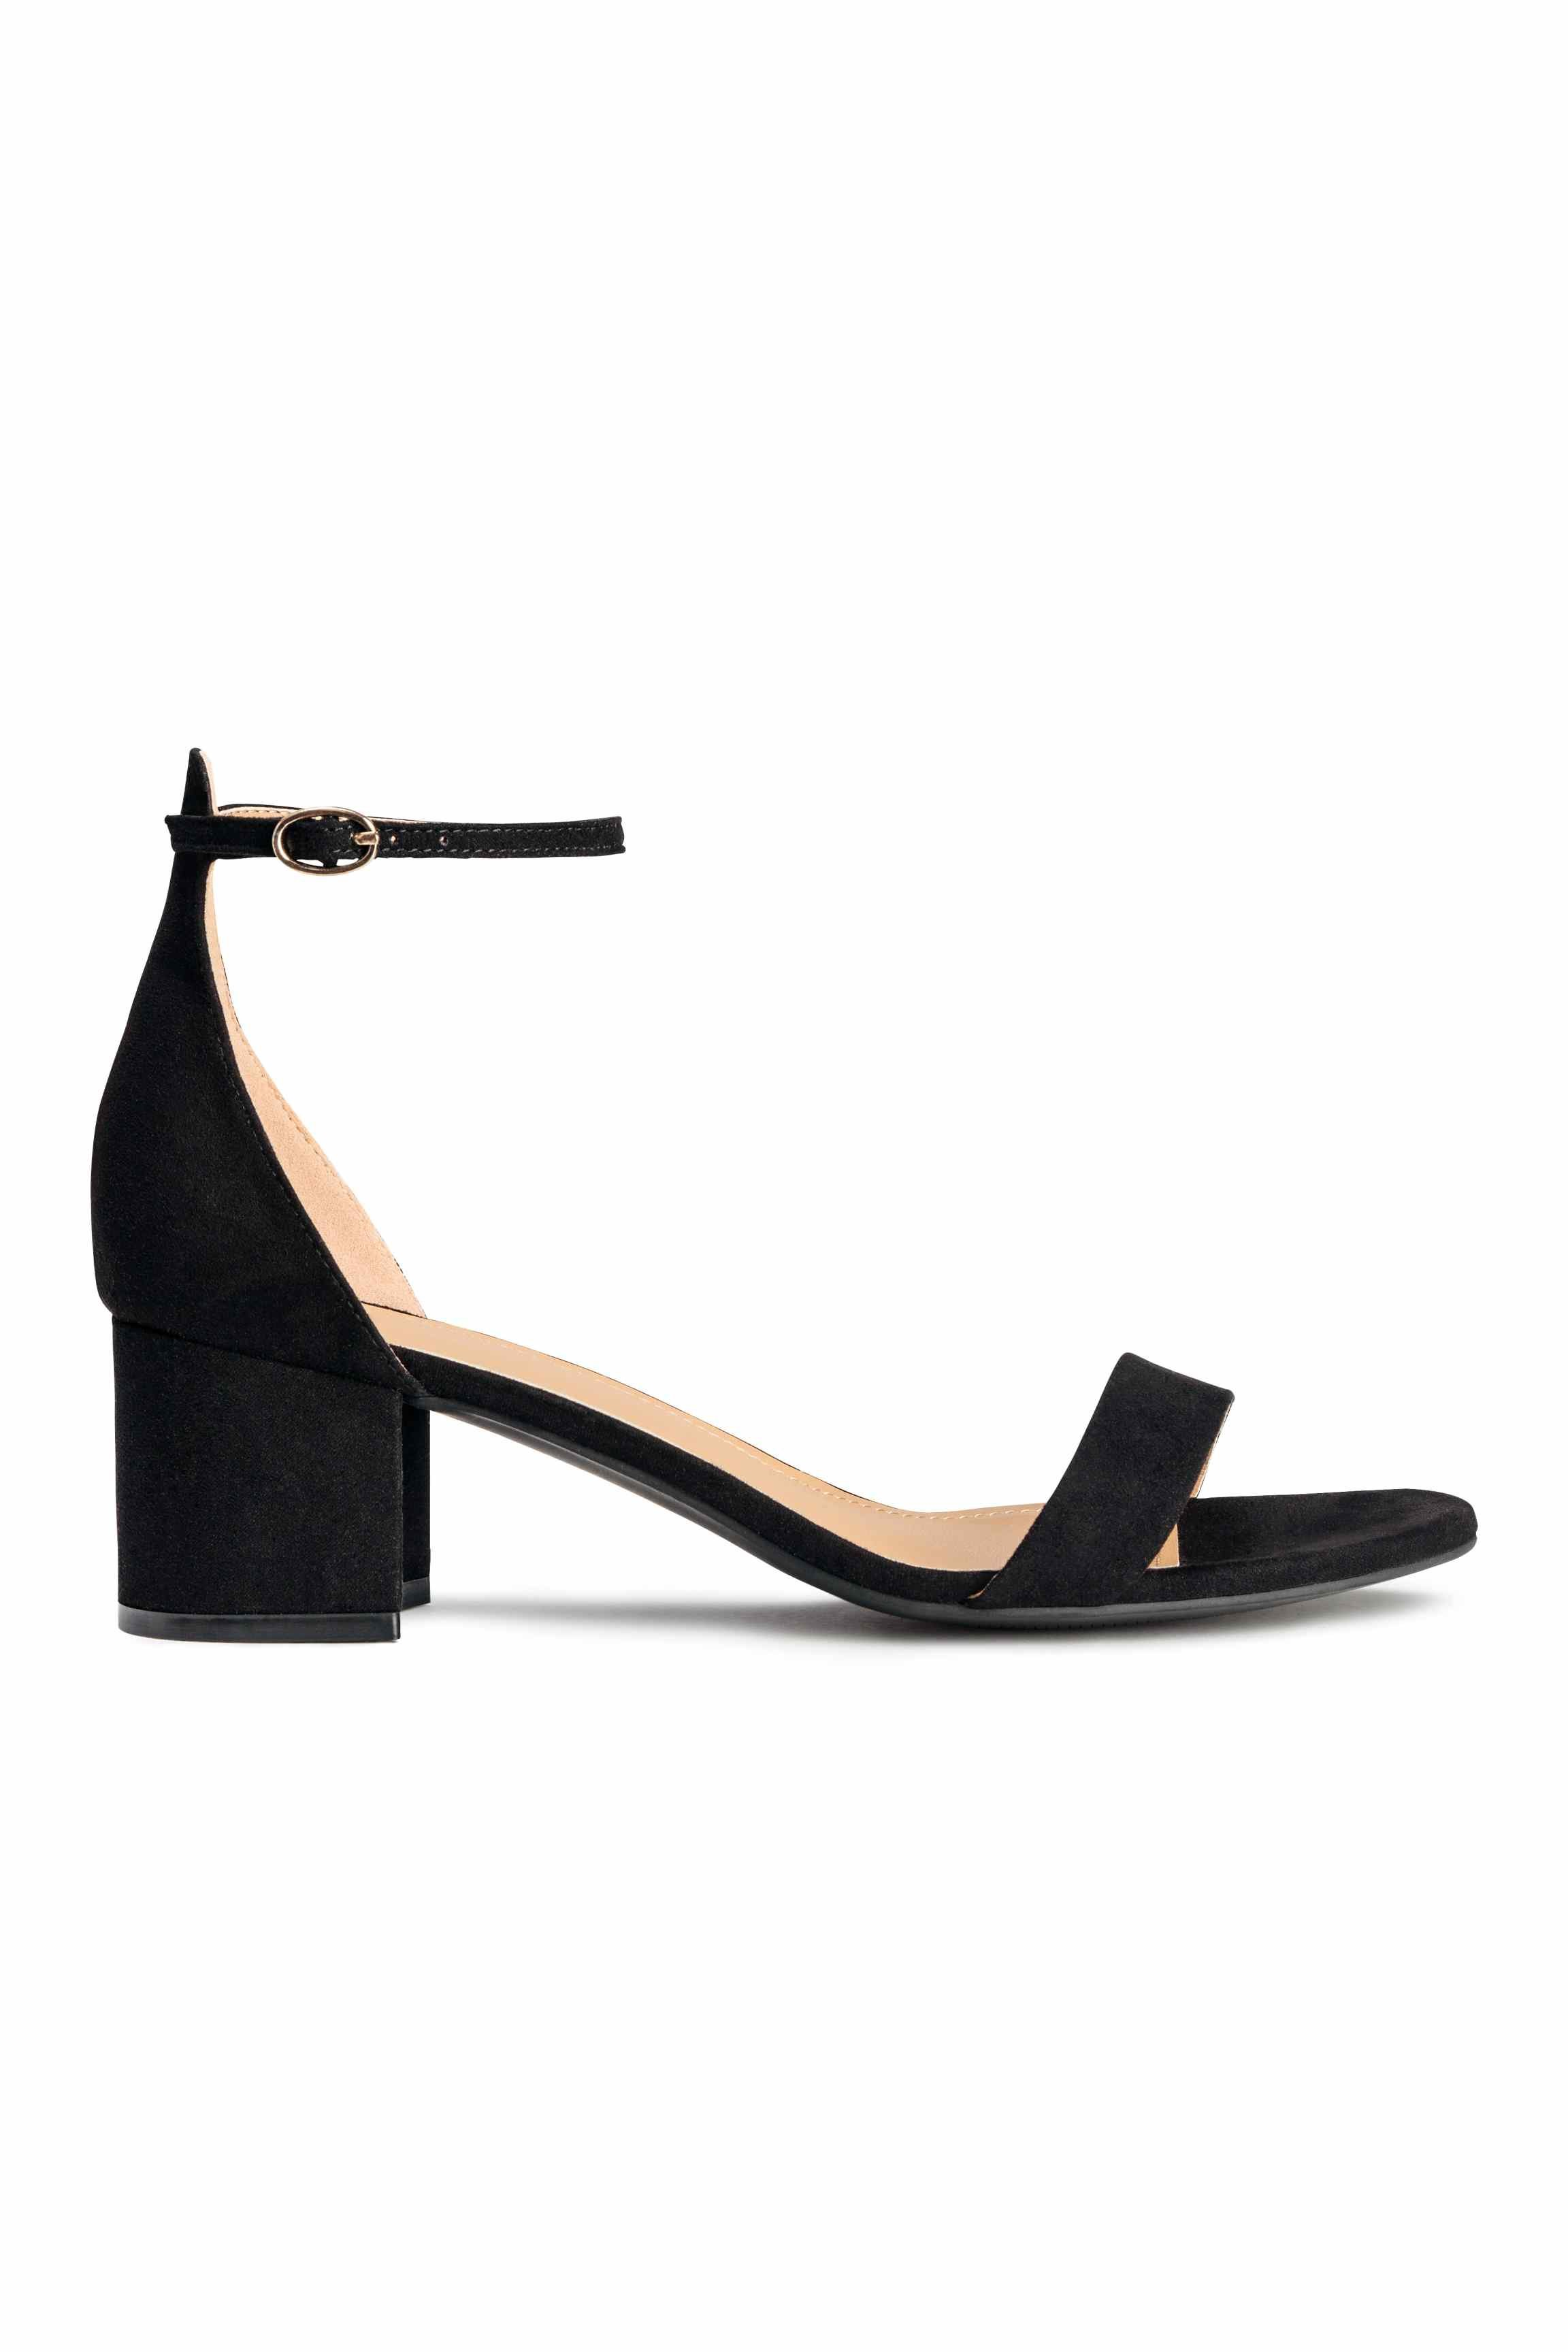 h m ankle sandals in black lyst